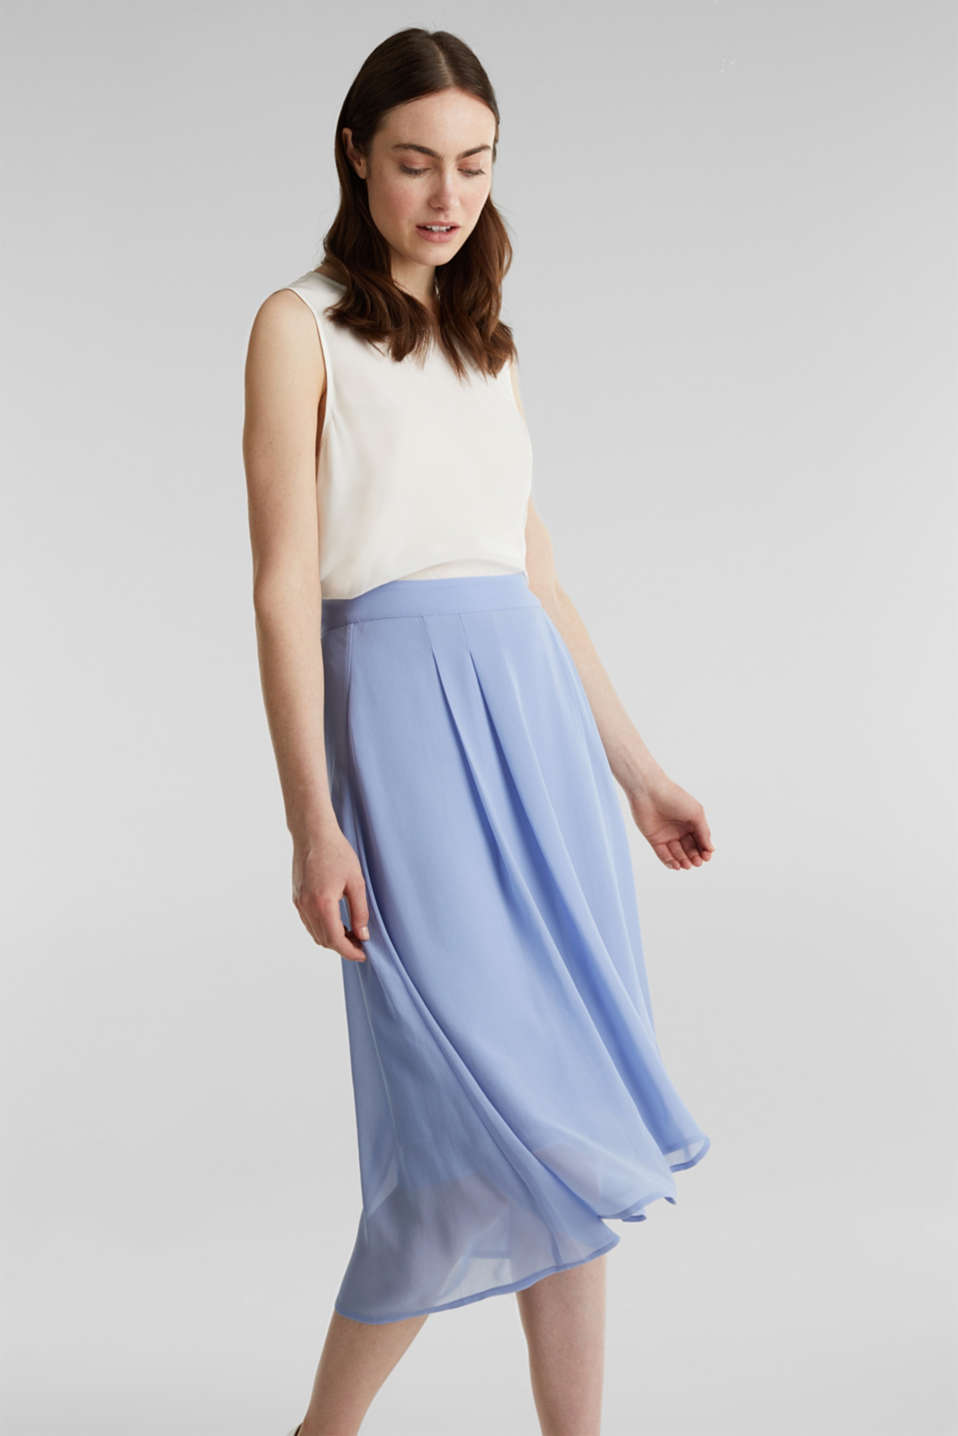 Esprit - Chiffon skirt with a high-low hem